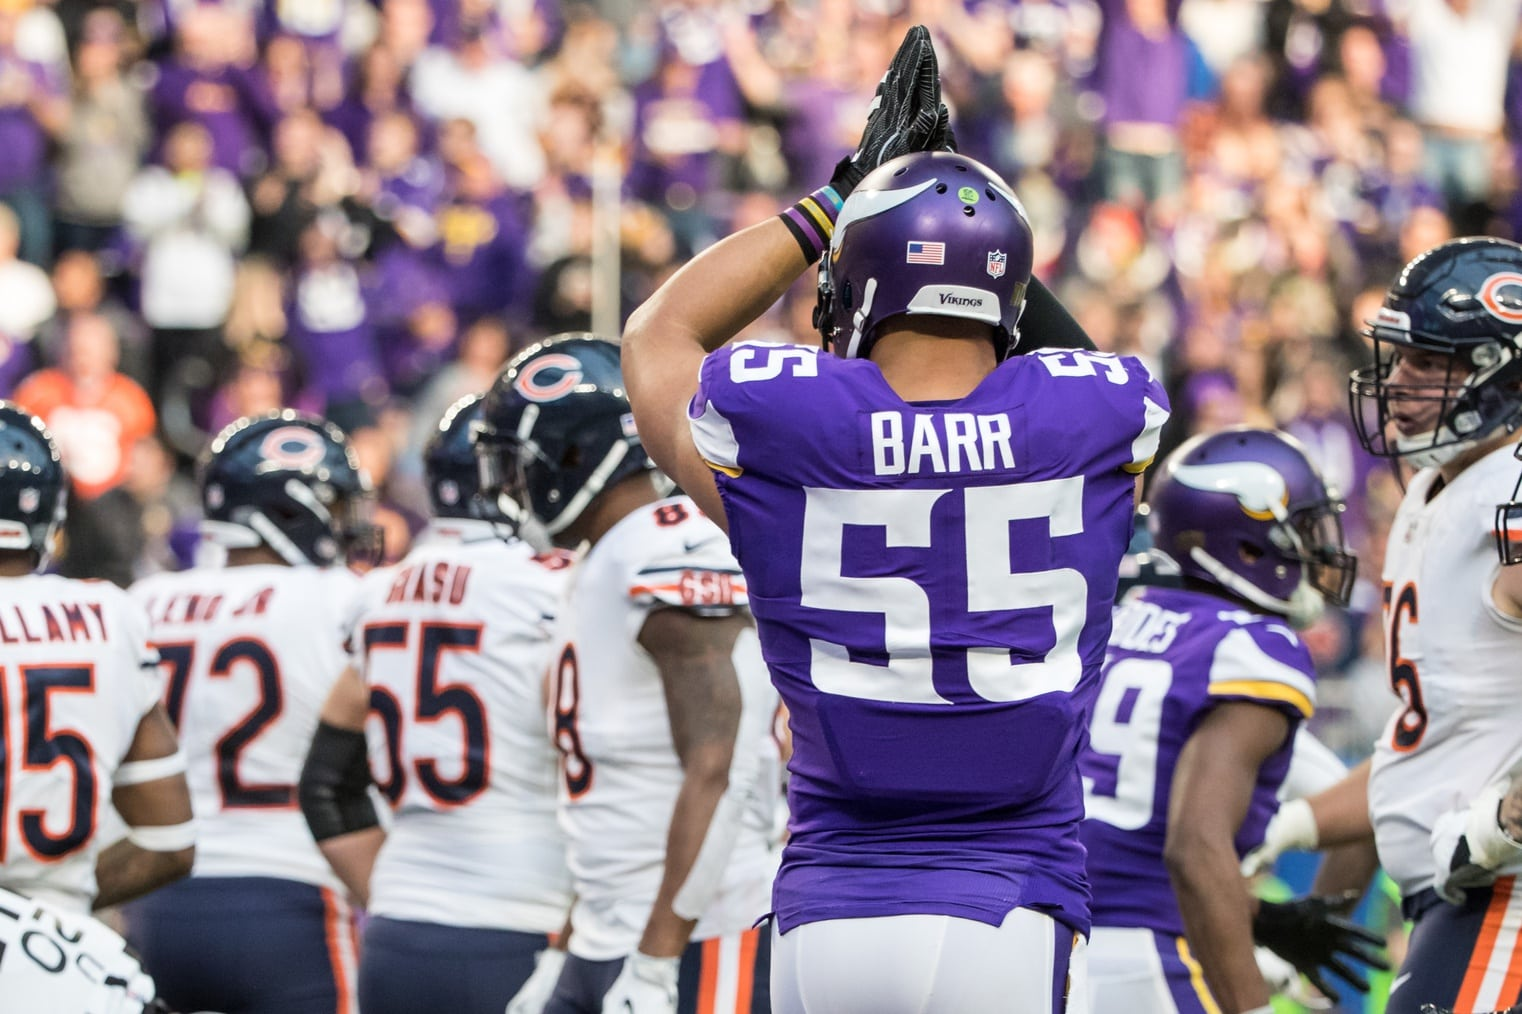 Anthony Barr pulls about-face on Jets, will return to Vikings